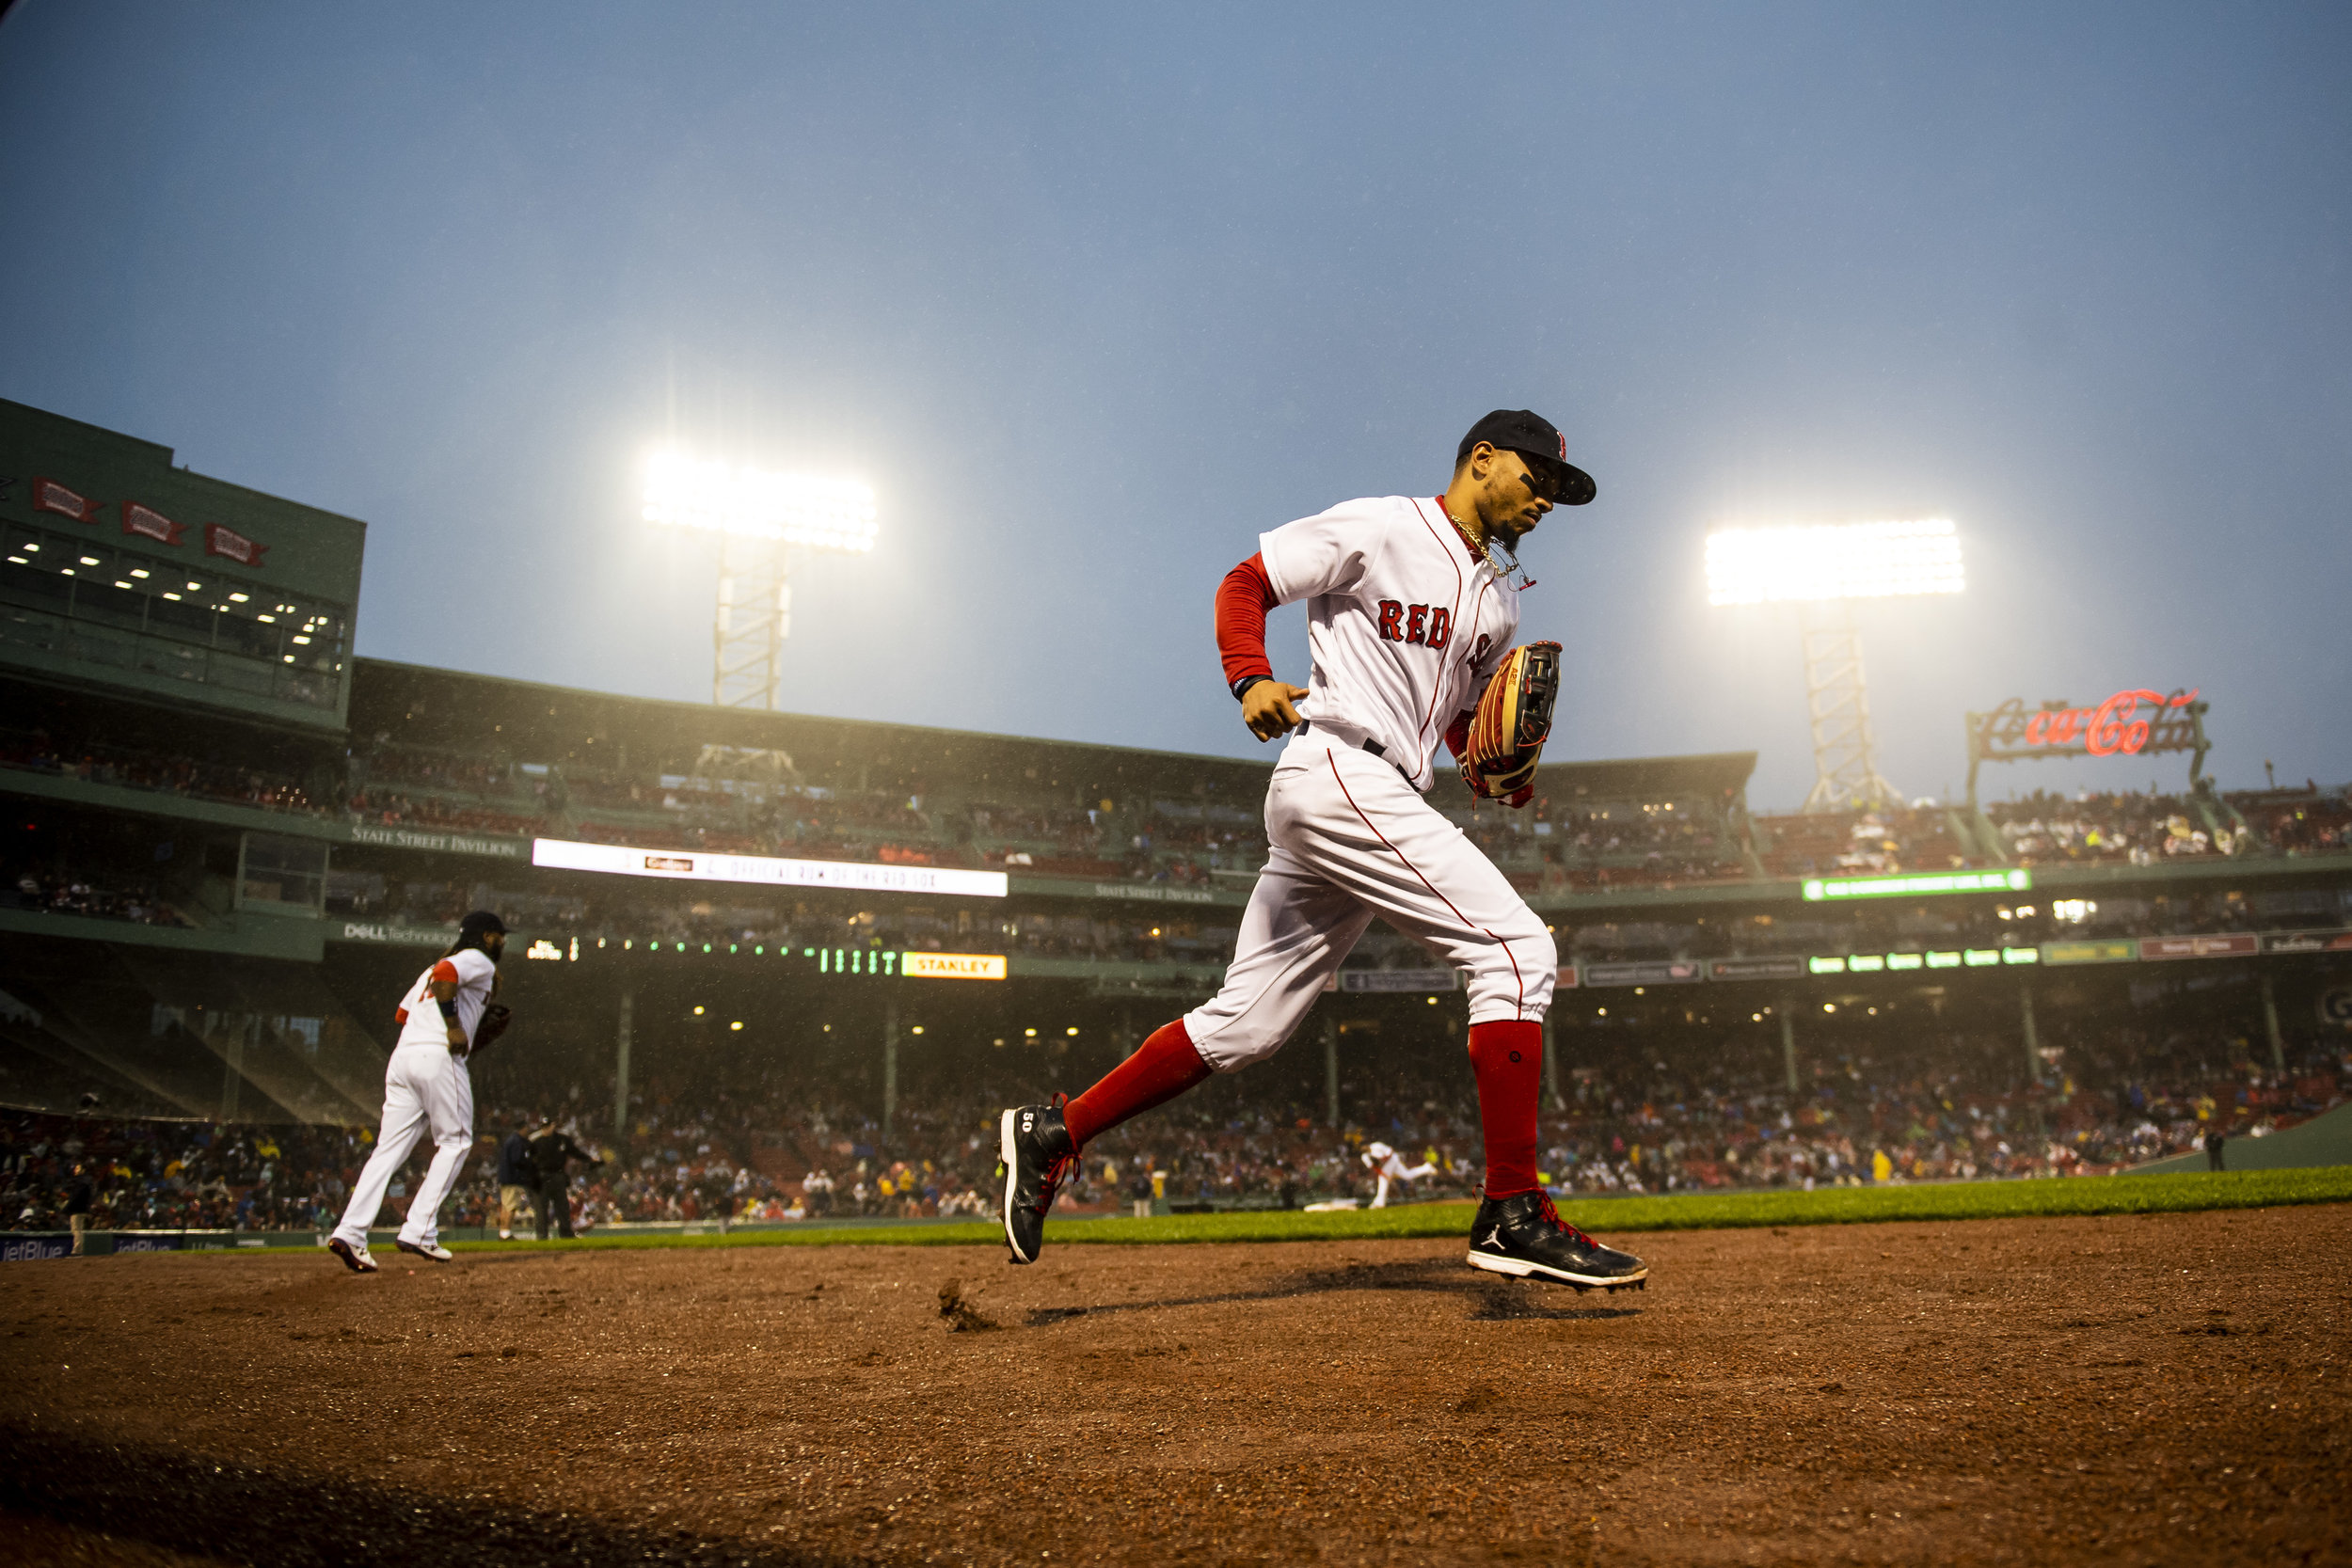 May 19, 2018, Boston, MA: Boston Red Sox outfielder Mookie Betts takes the field as the Boston Red Sox face the Baltimore Orioles at Fenway Park in Boston, Massachusetts on Saturday, May 19, 2018. (Photo by Matthew Thomas/Boston Red Sox)